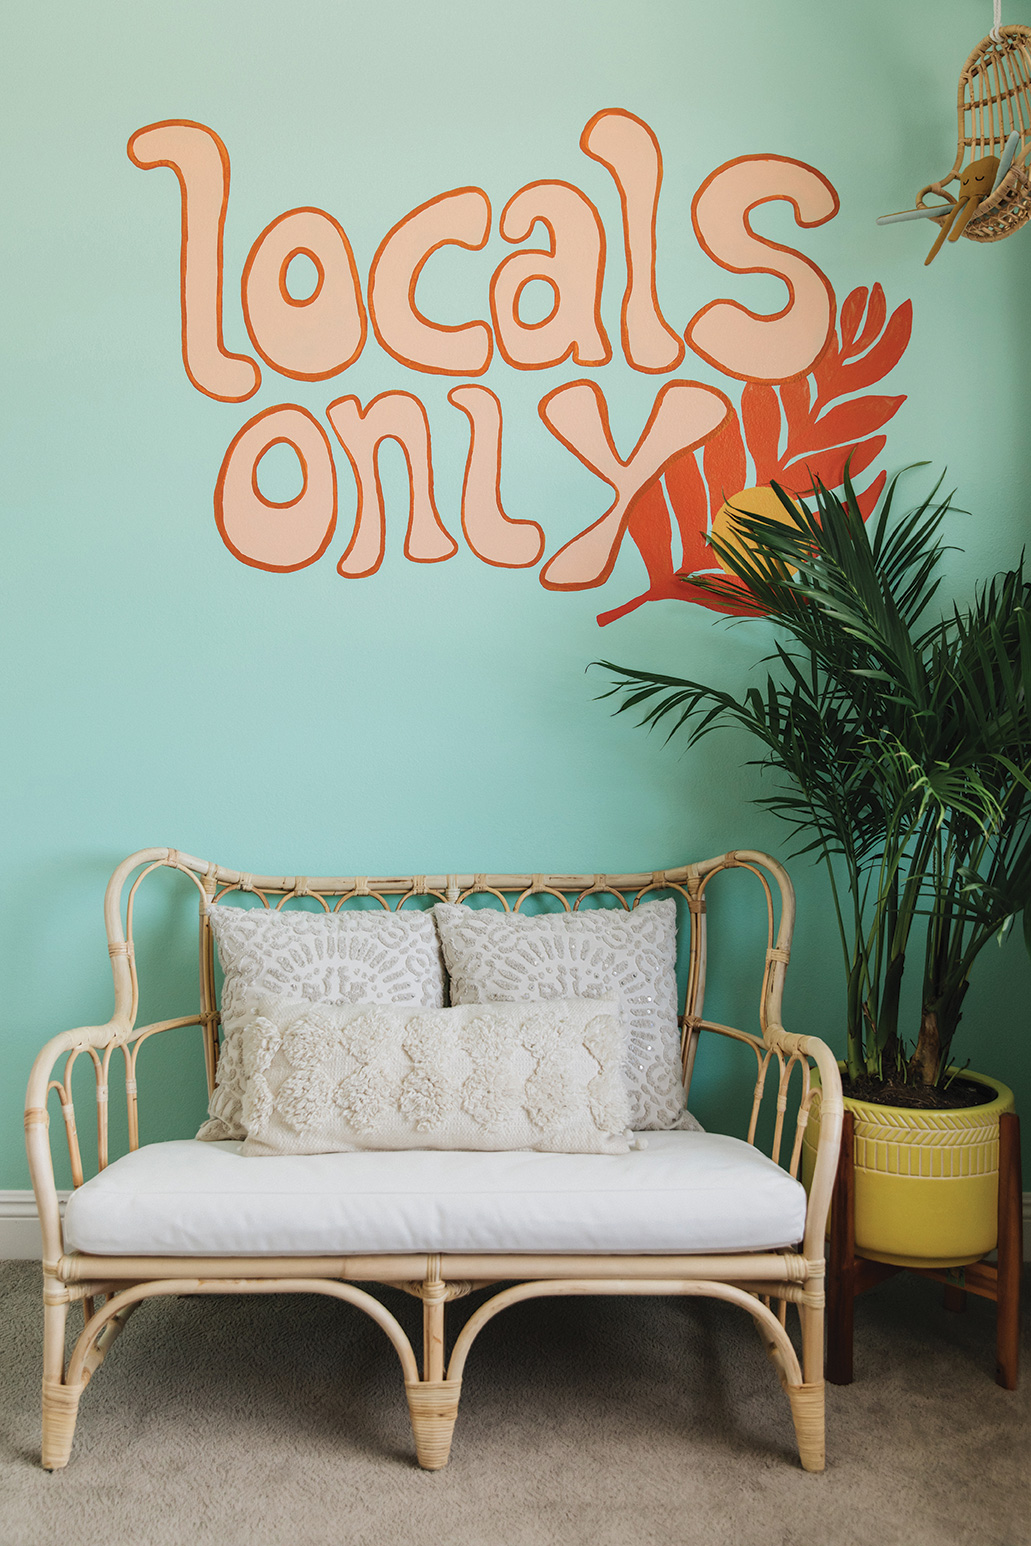 wall decor mural decal hand lettering locals only